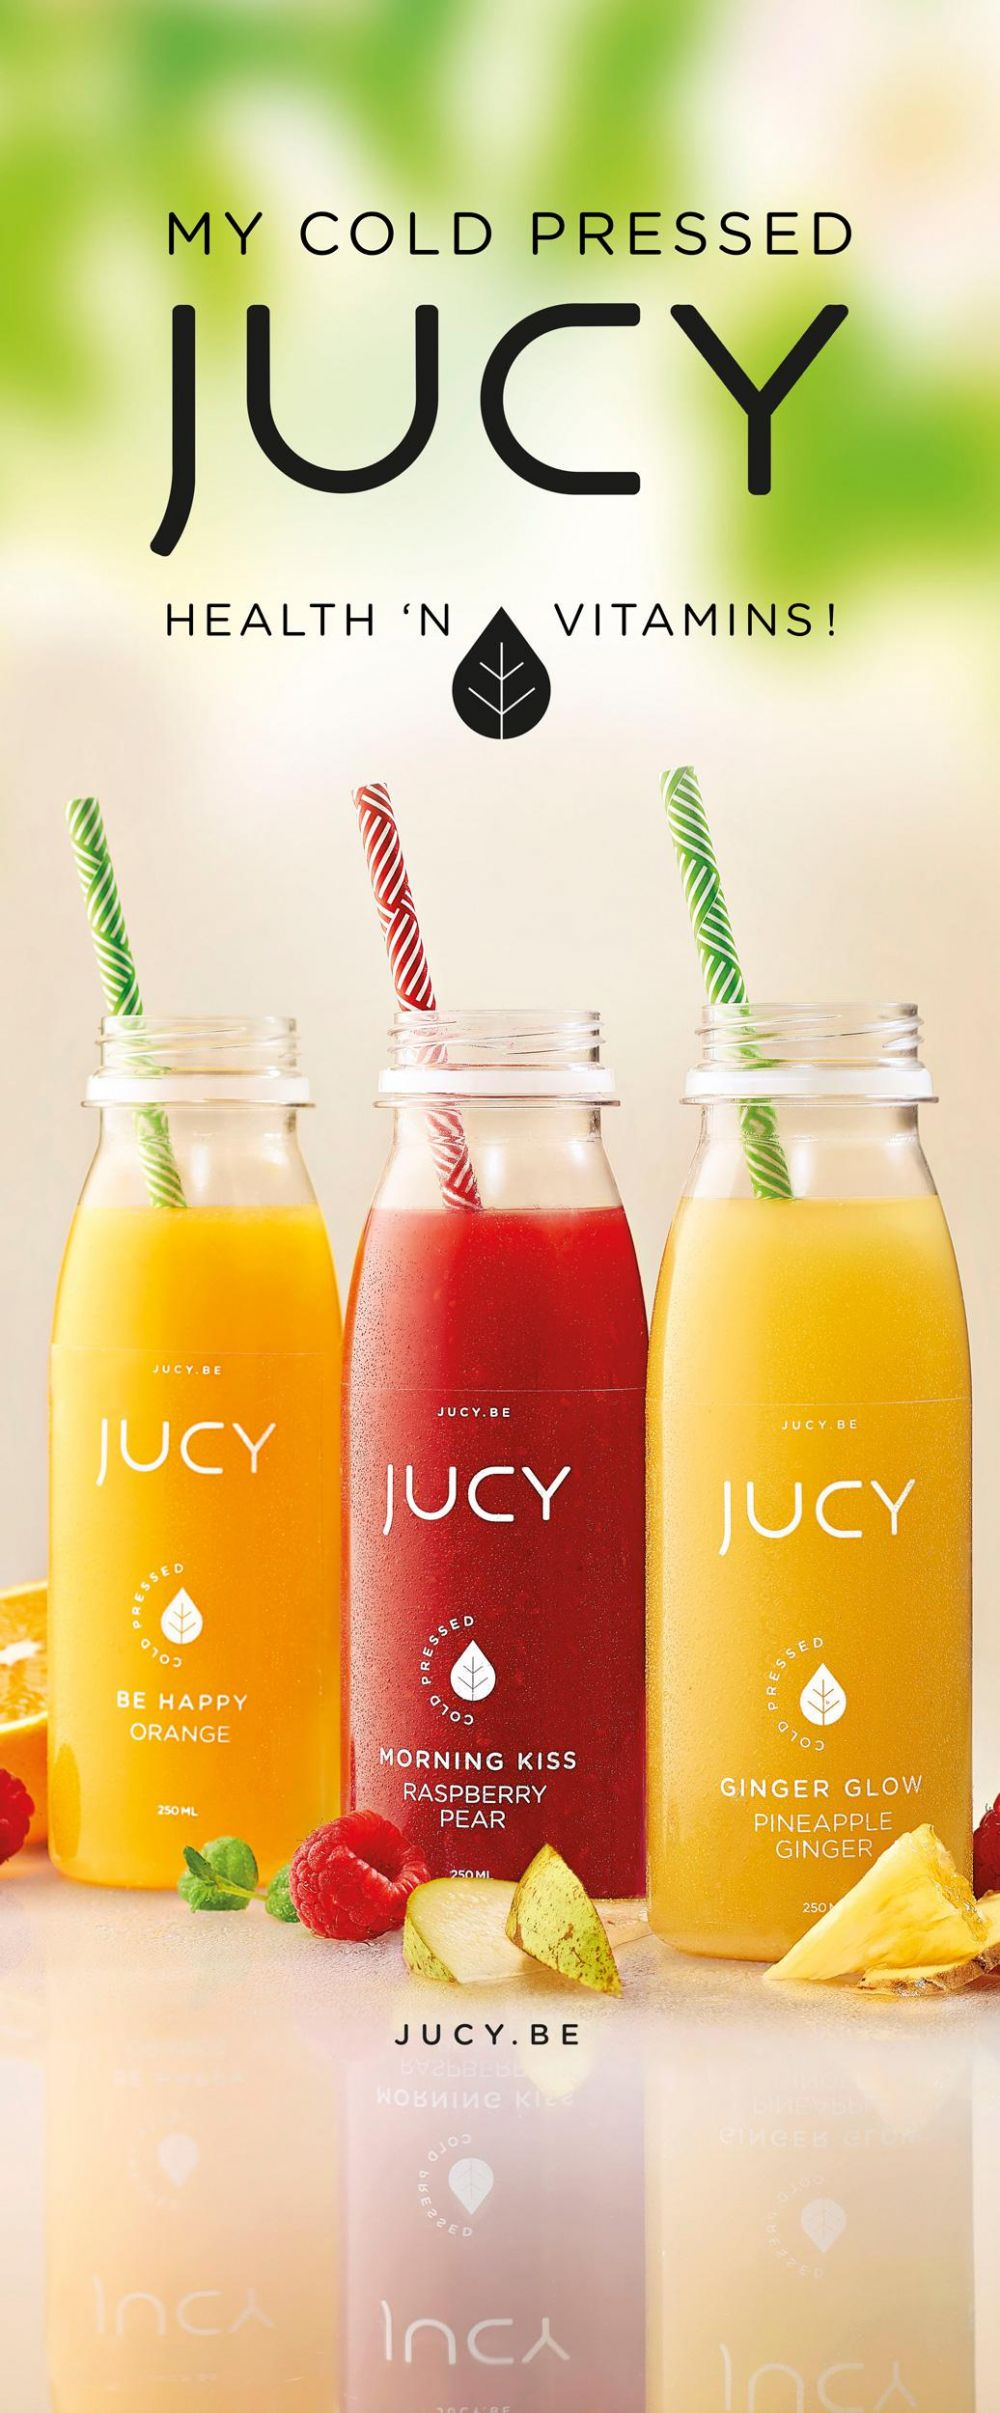 Jucy - Cold Pressed - POP material